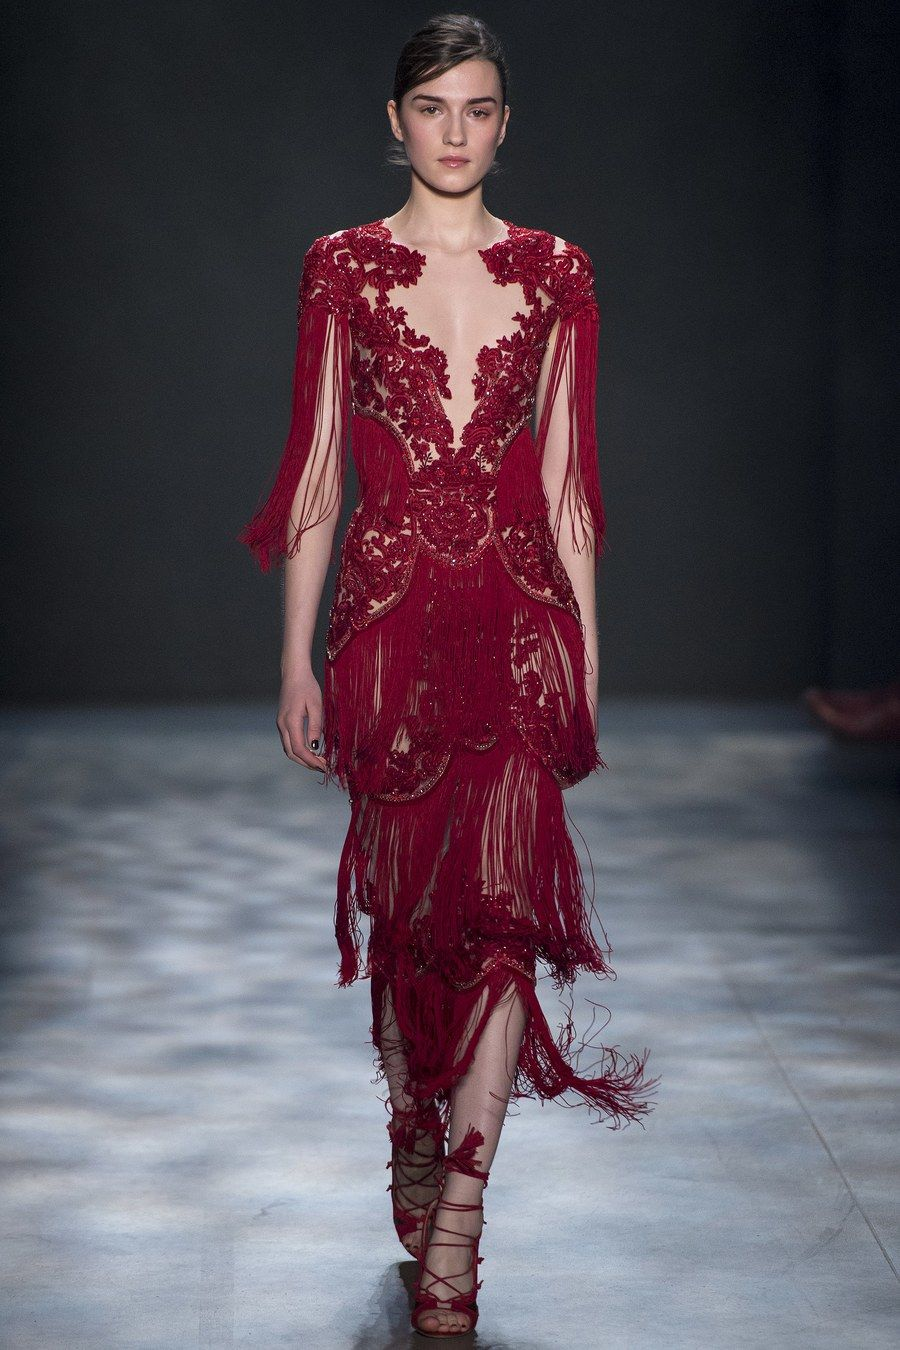 to wear - Fall marchesa runway review video